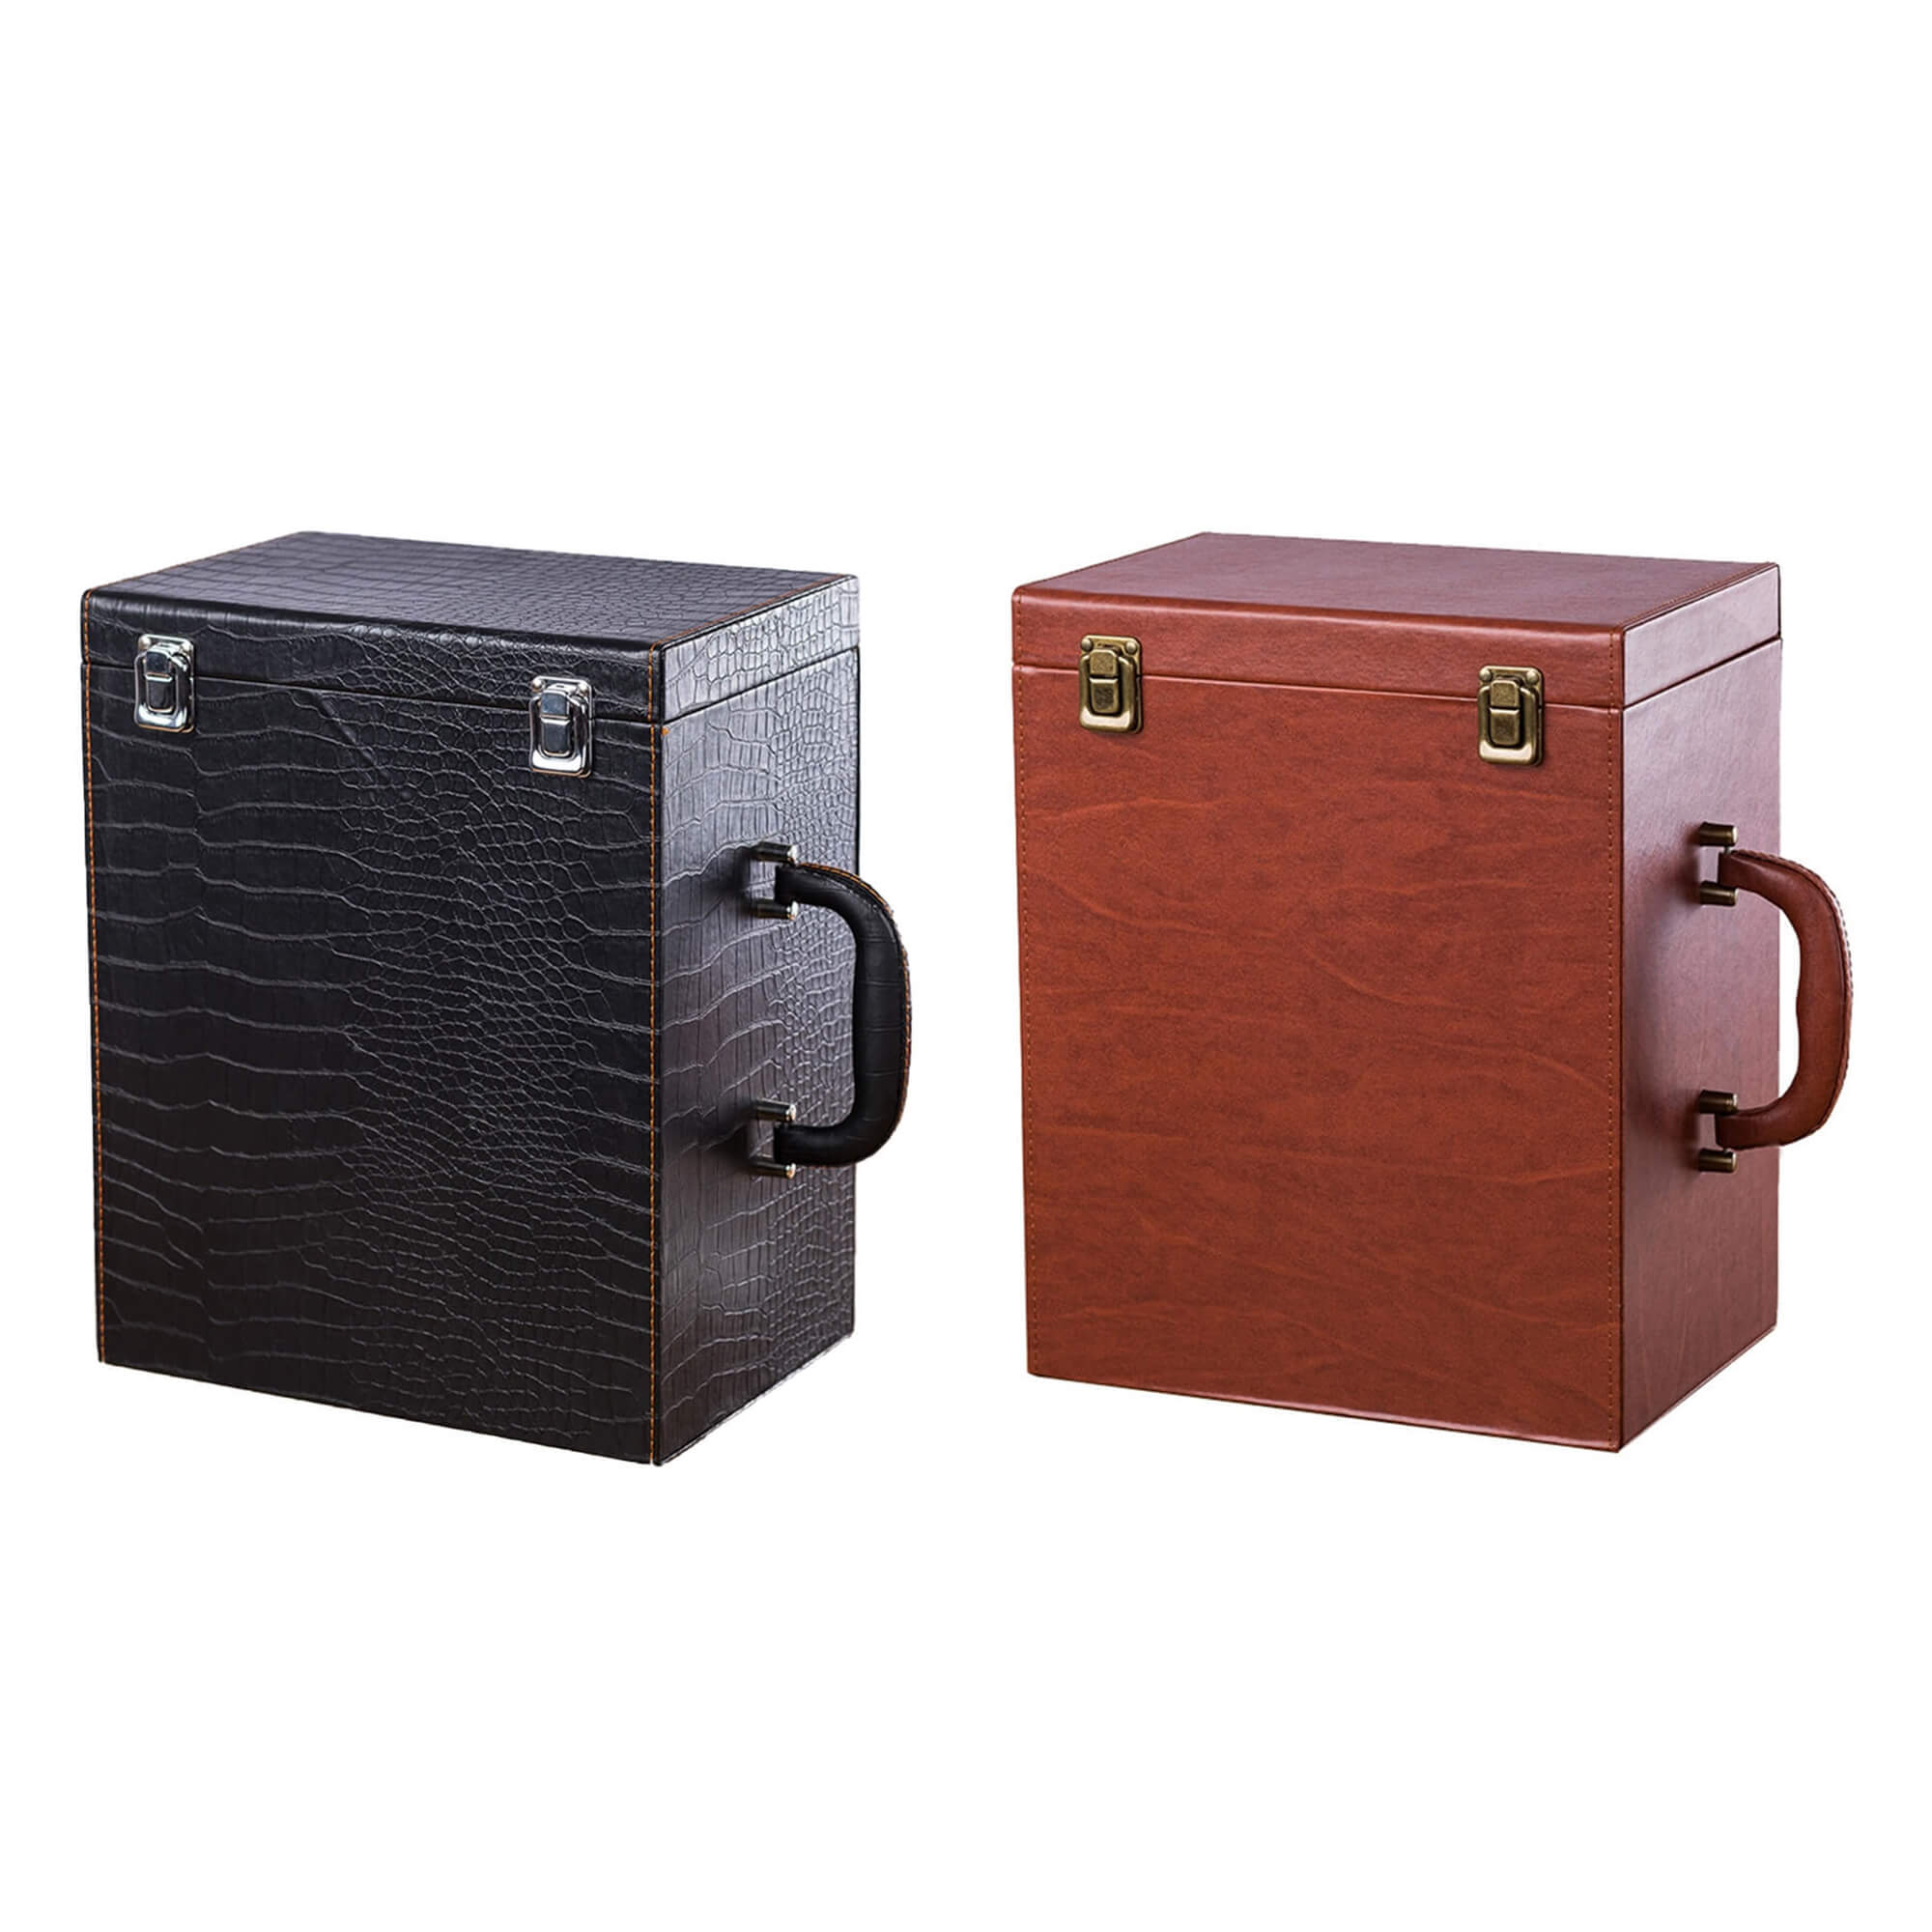 Custom Hinged Lid Insulated Cardboard Wine Boxes Side View One